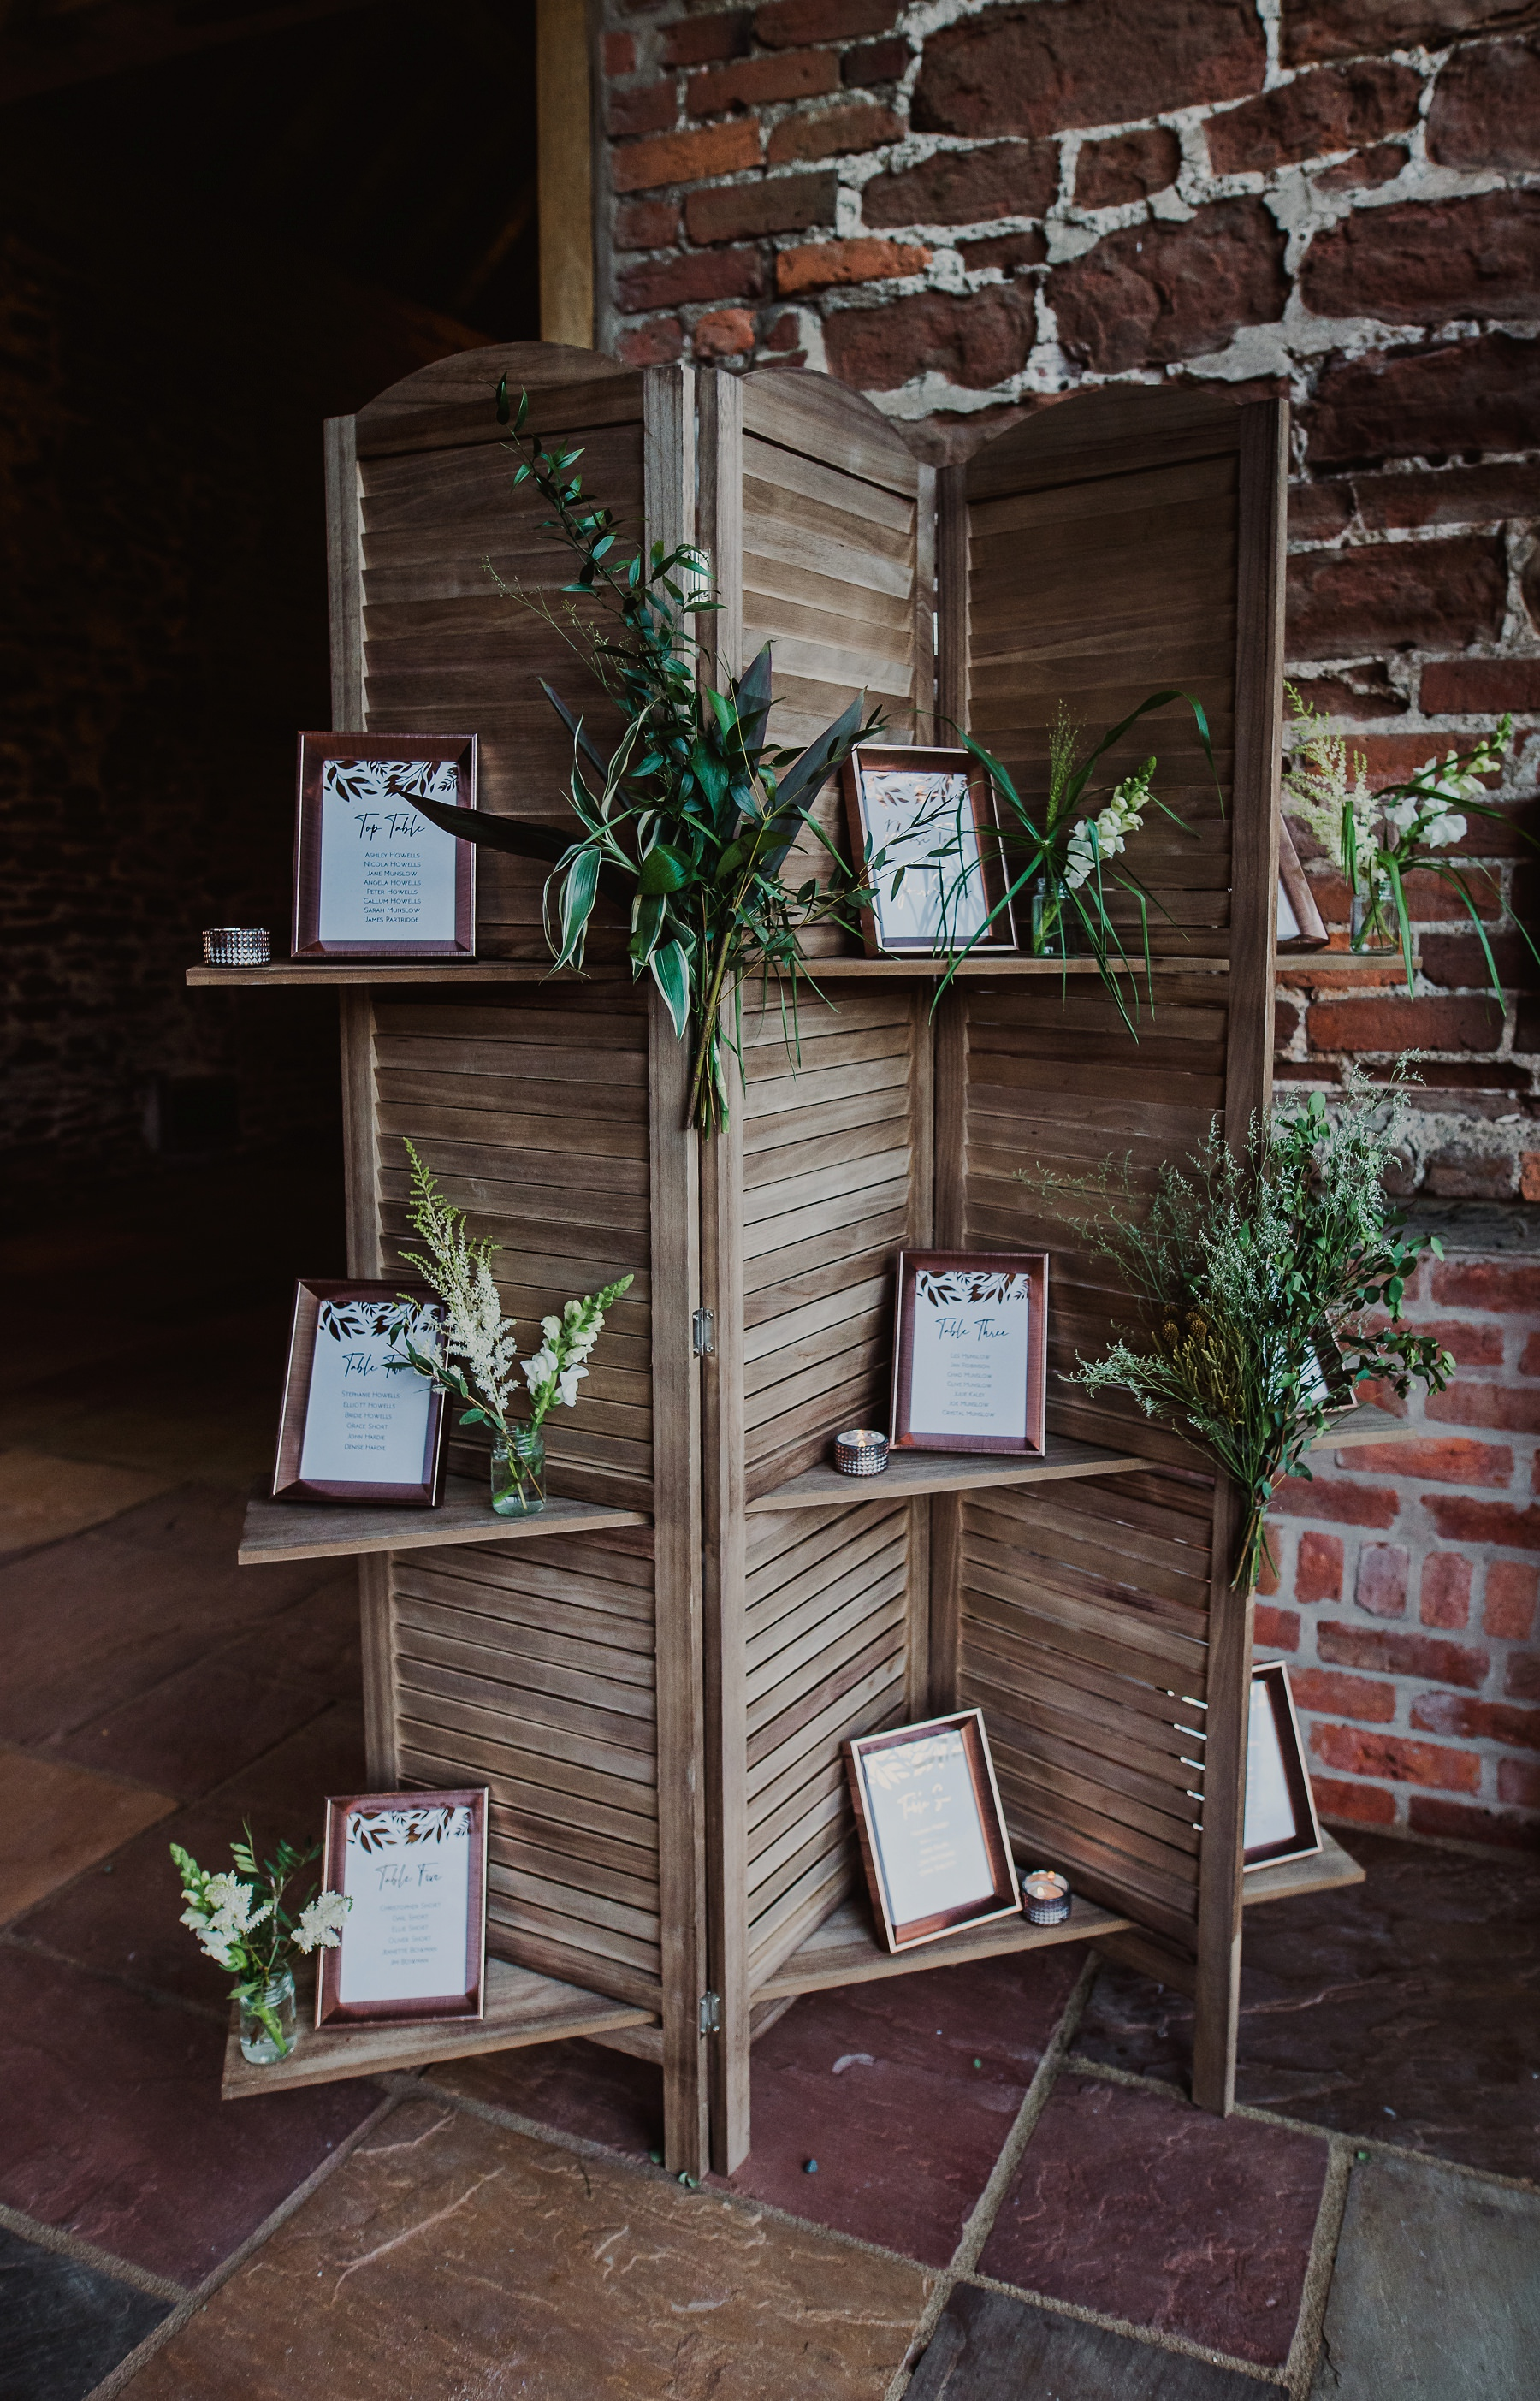 Bridal_Barn_Open_Evening_June2019 (90).jpg